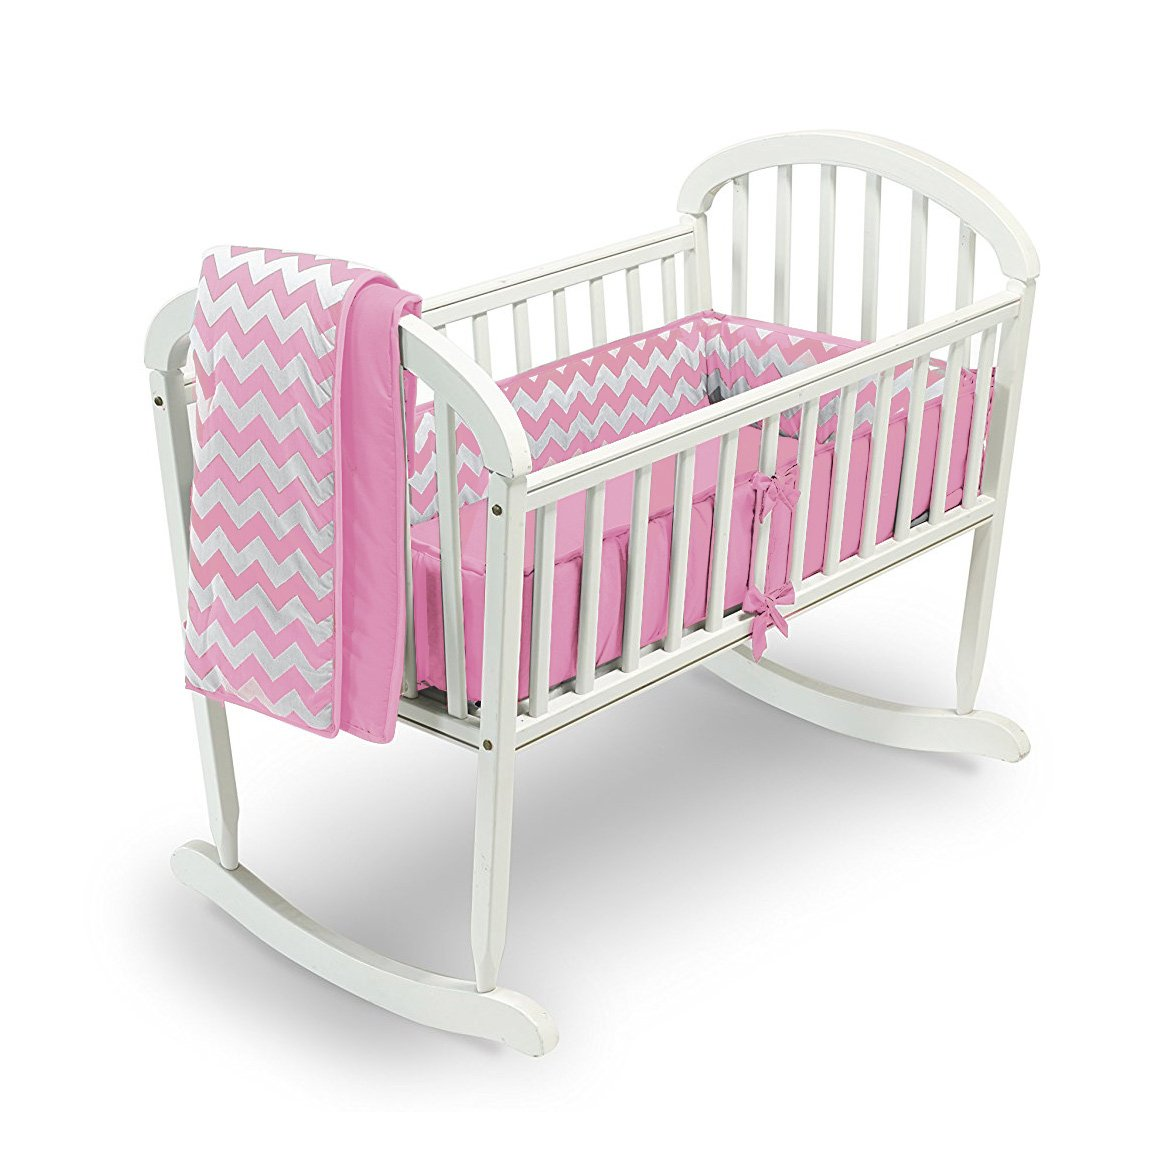 Chevron Cradle Bedding Color Pink Size 15x33 Baby Doll